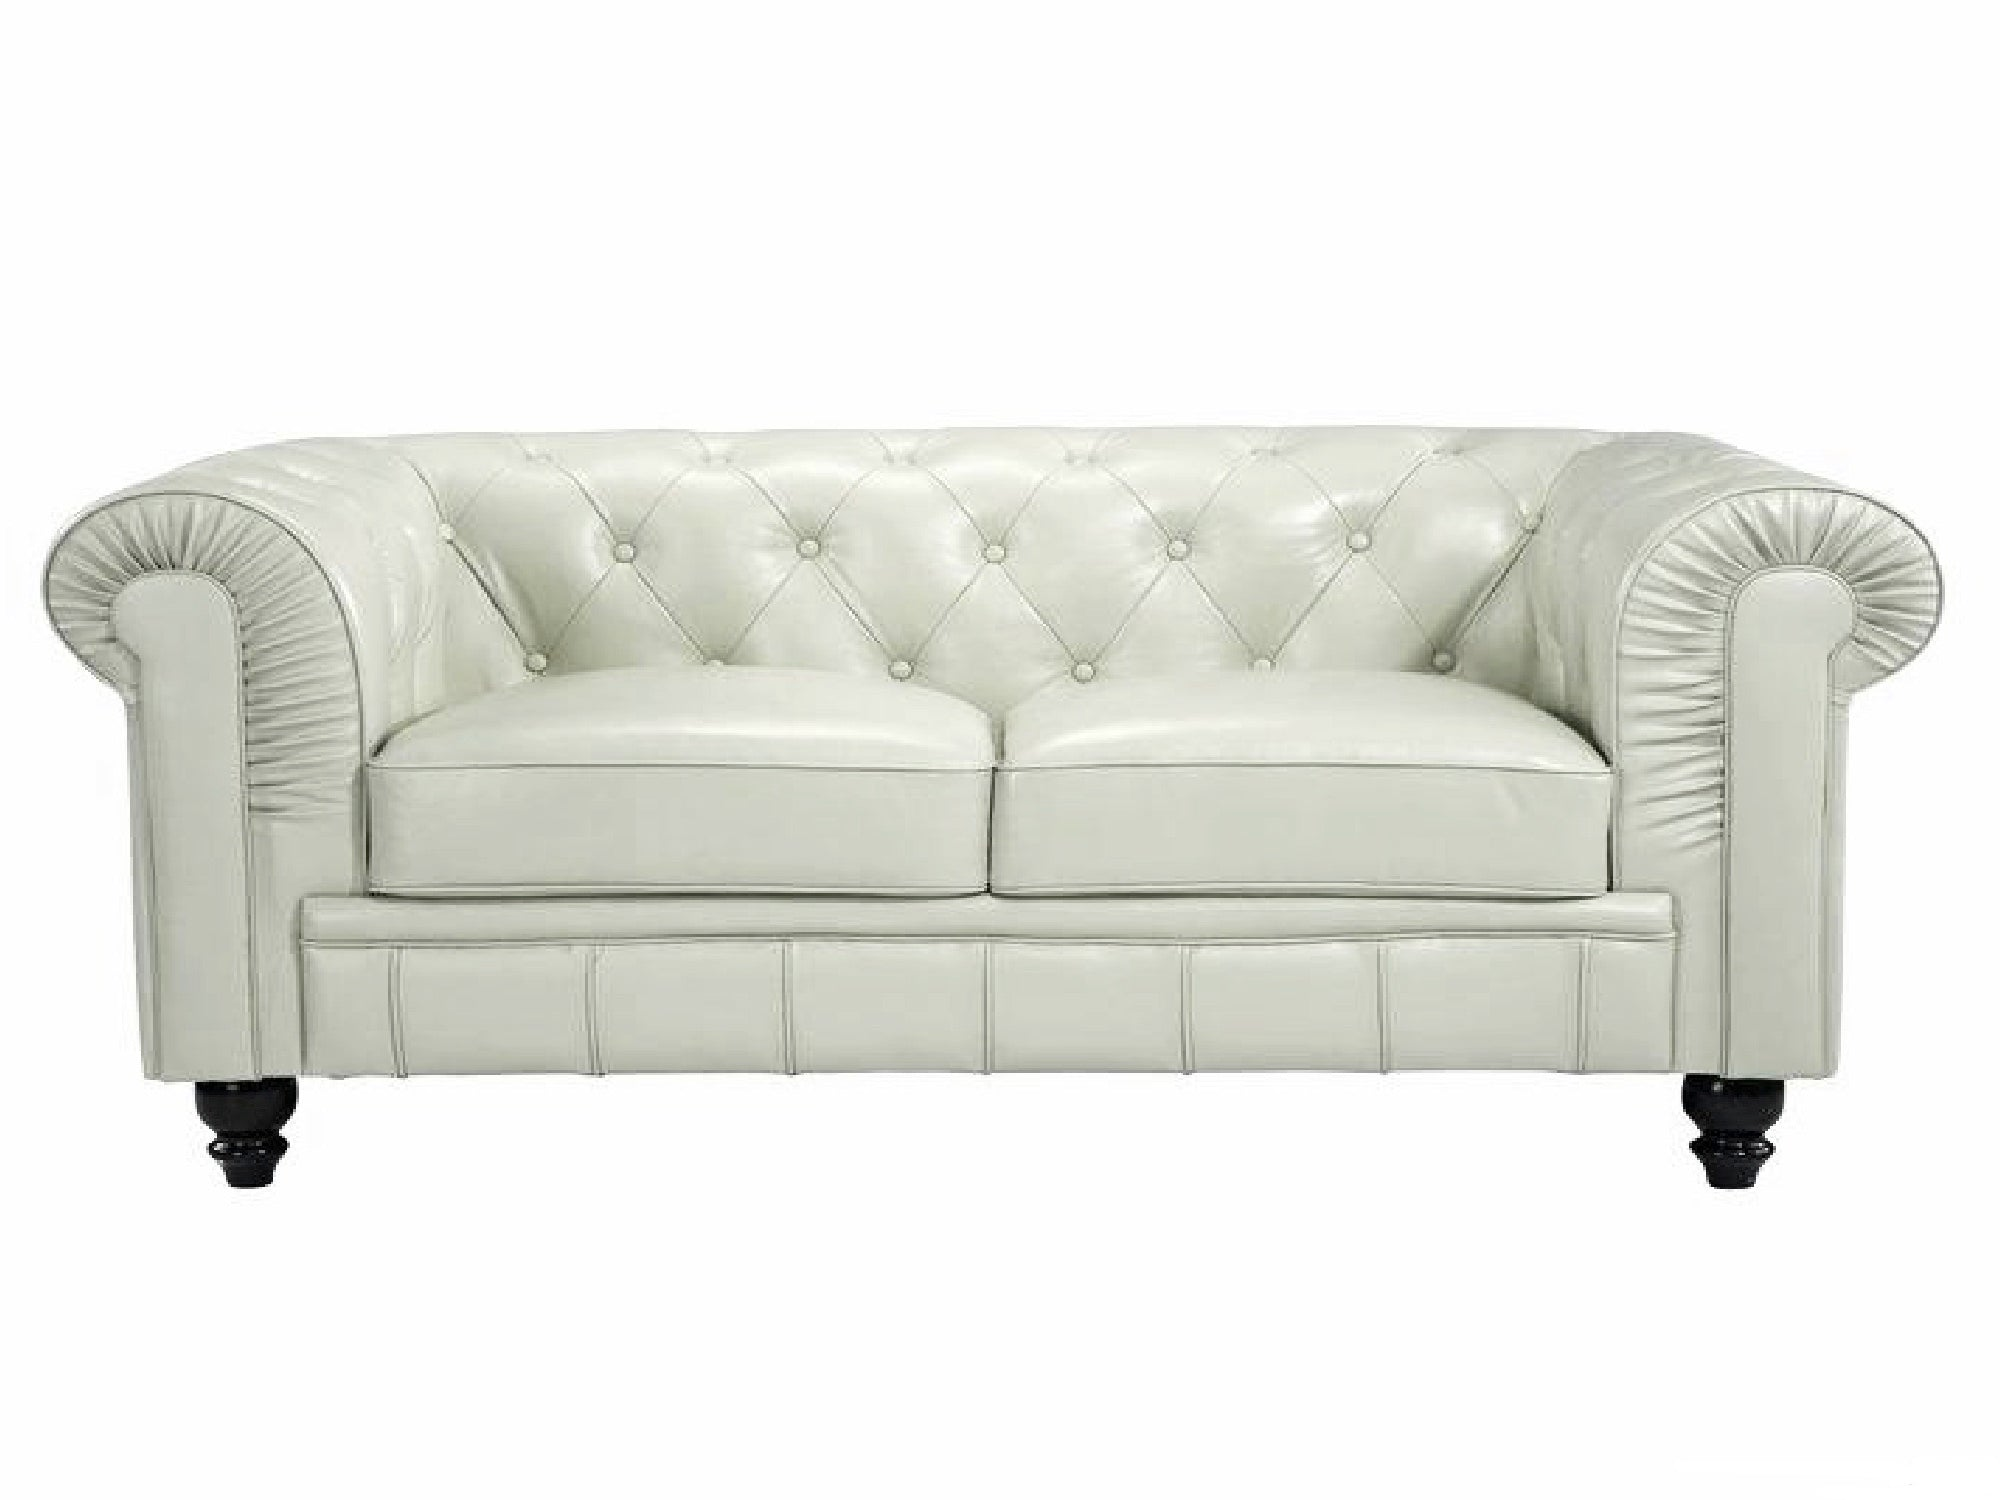 VIENNA LOVESEAT - WHITE